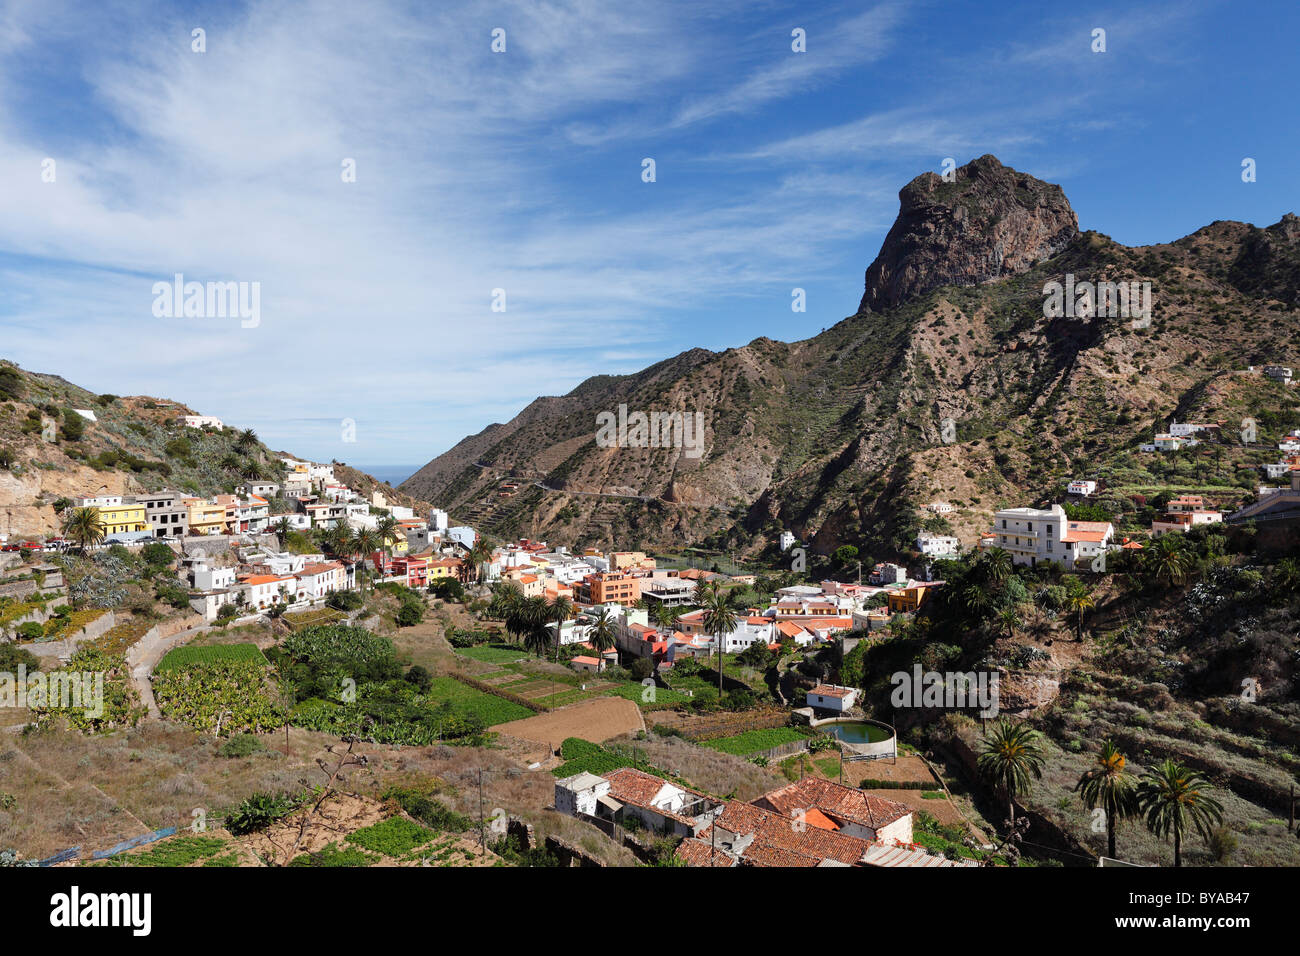 Vallehermoso with Roque Cano Mountain, La Gomera, Canary Islands, Spain, Europe - Stock Image